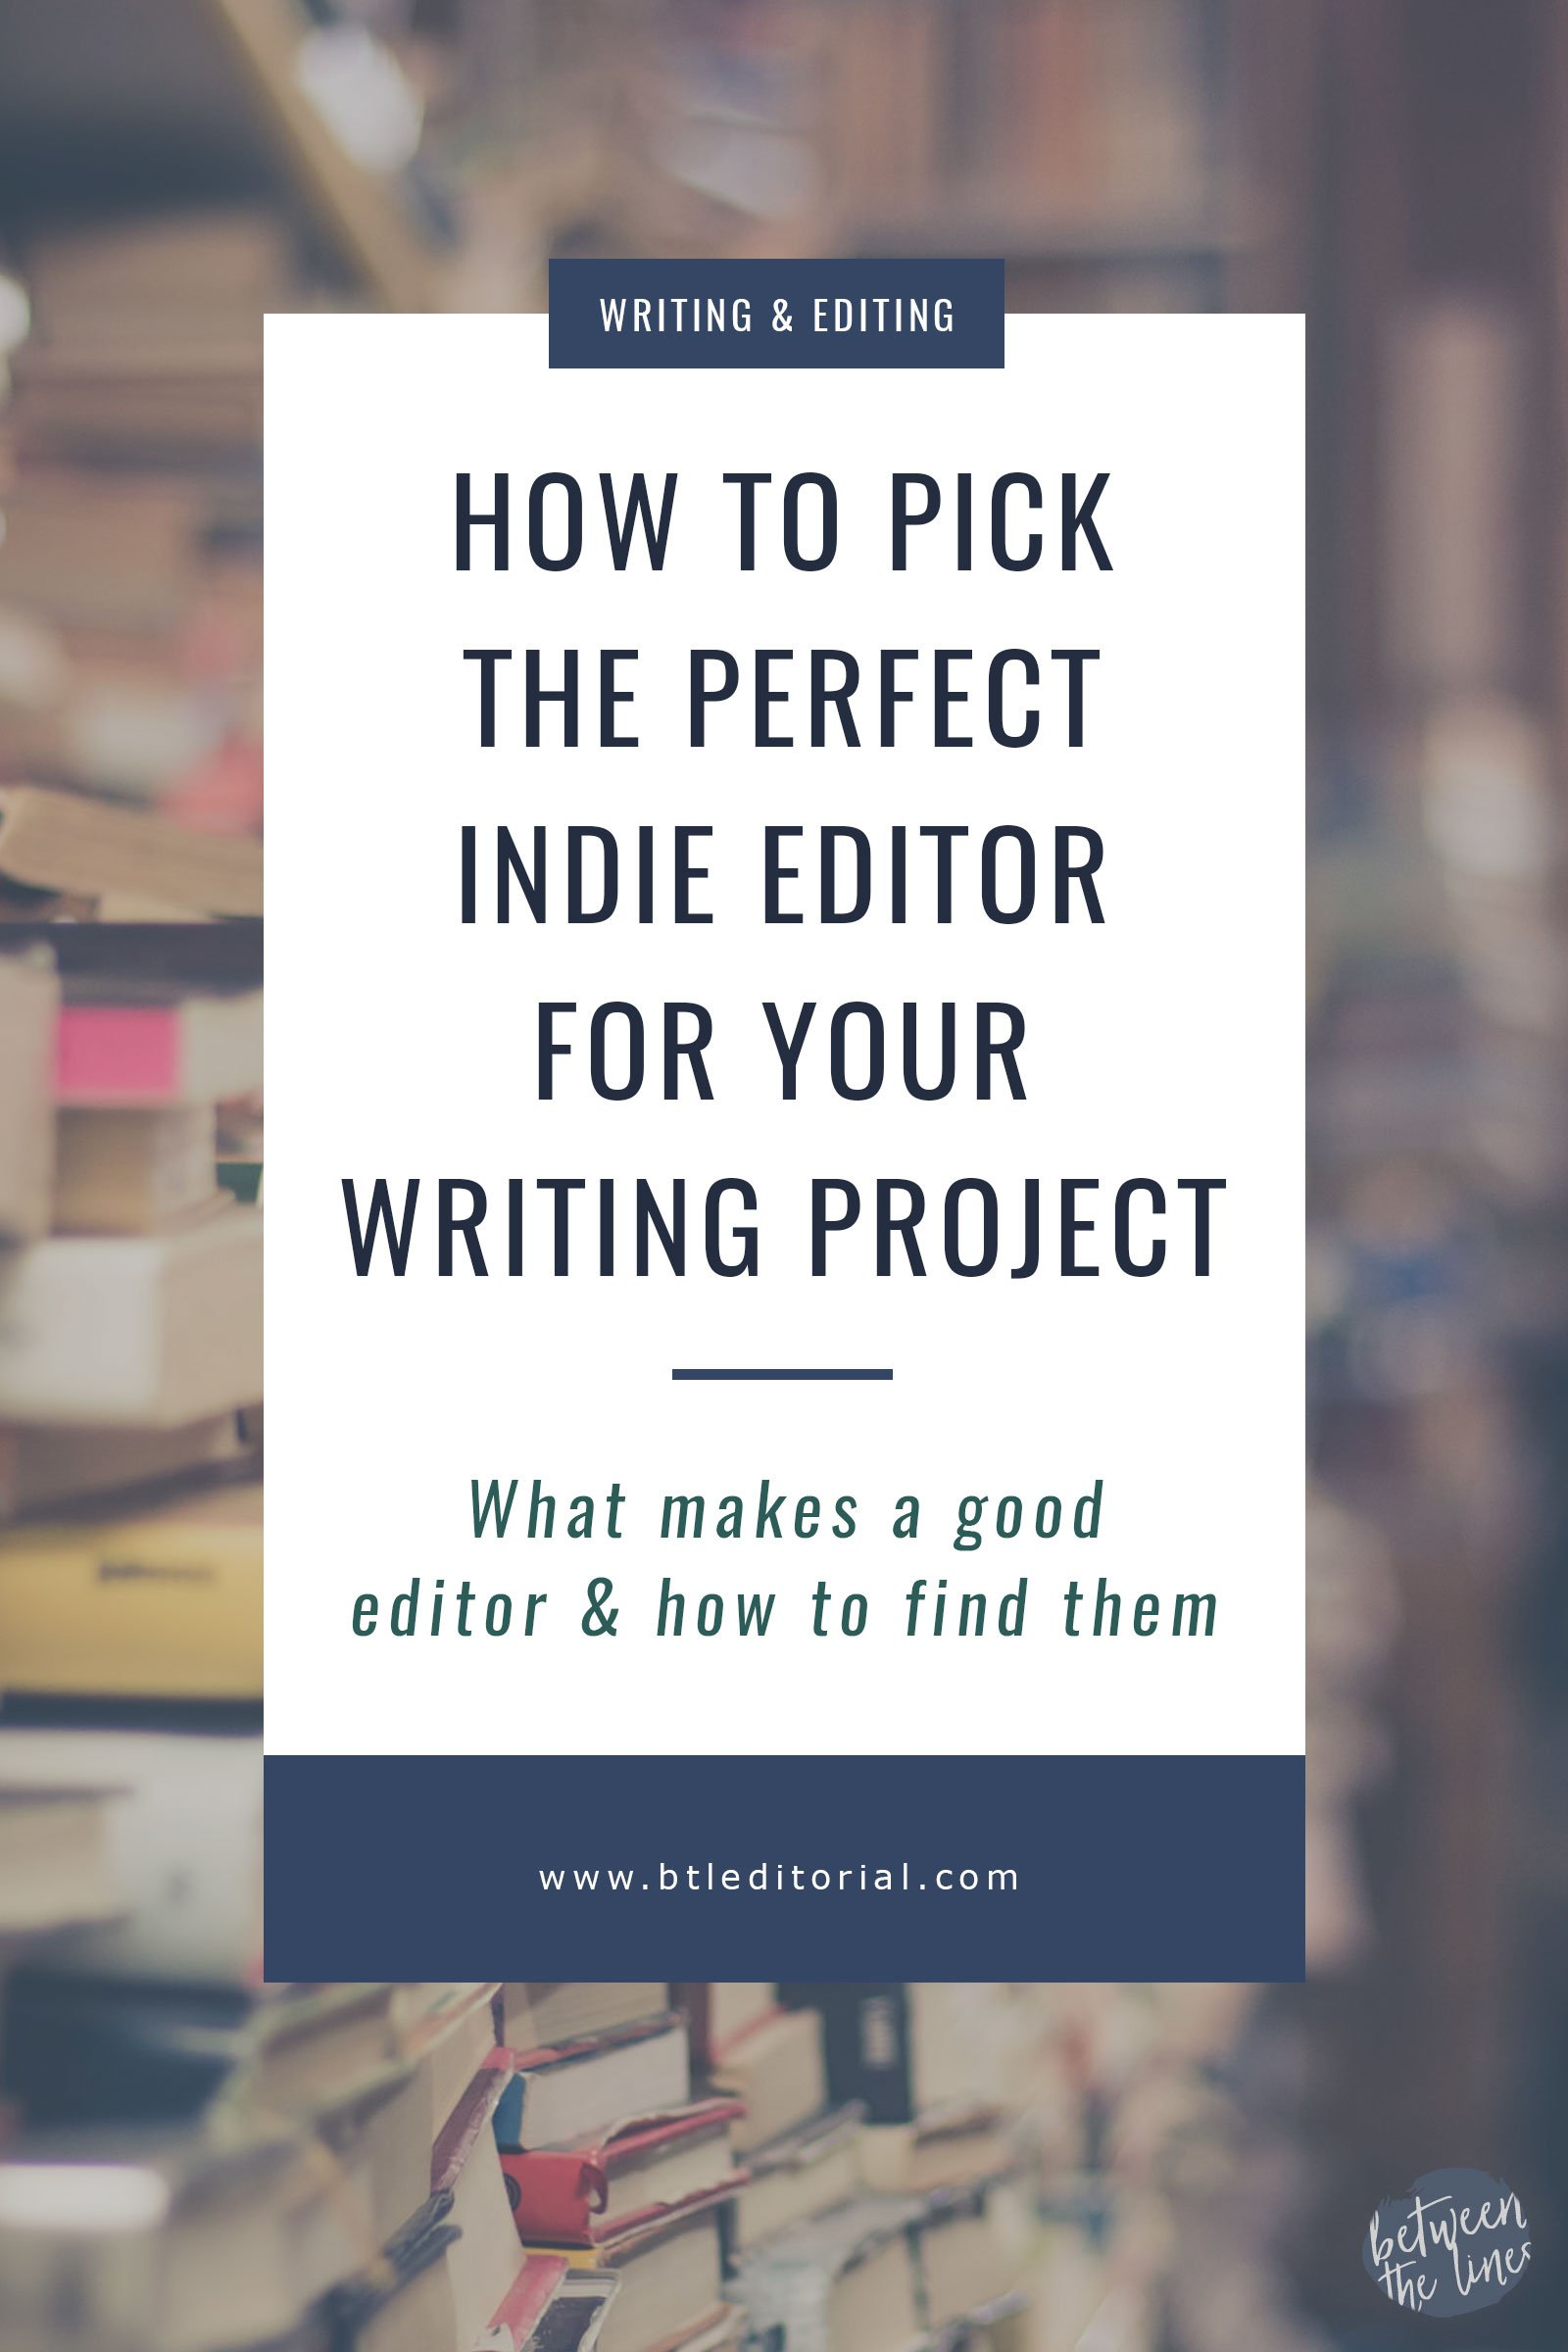 How to Pick the Perfect Indie Editor for Your Writing Project | Self-publishing is flourishing and indie writers need editors too! How do you find the perfect editor?